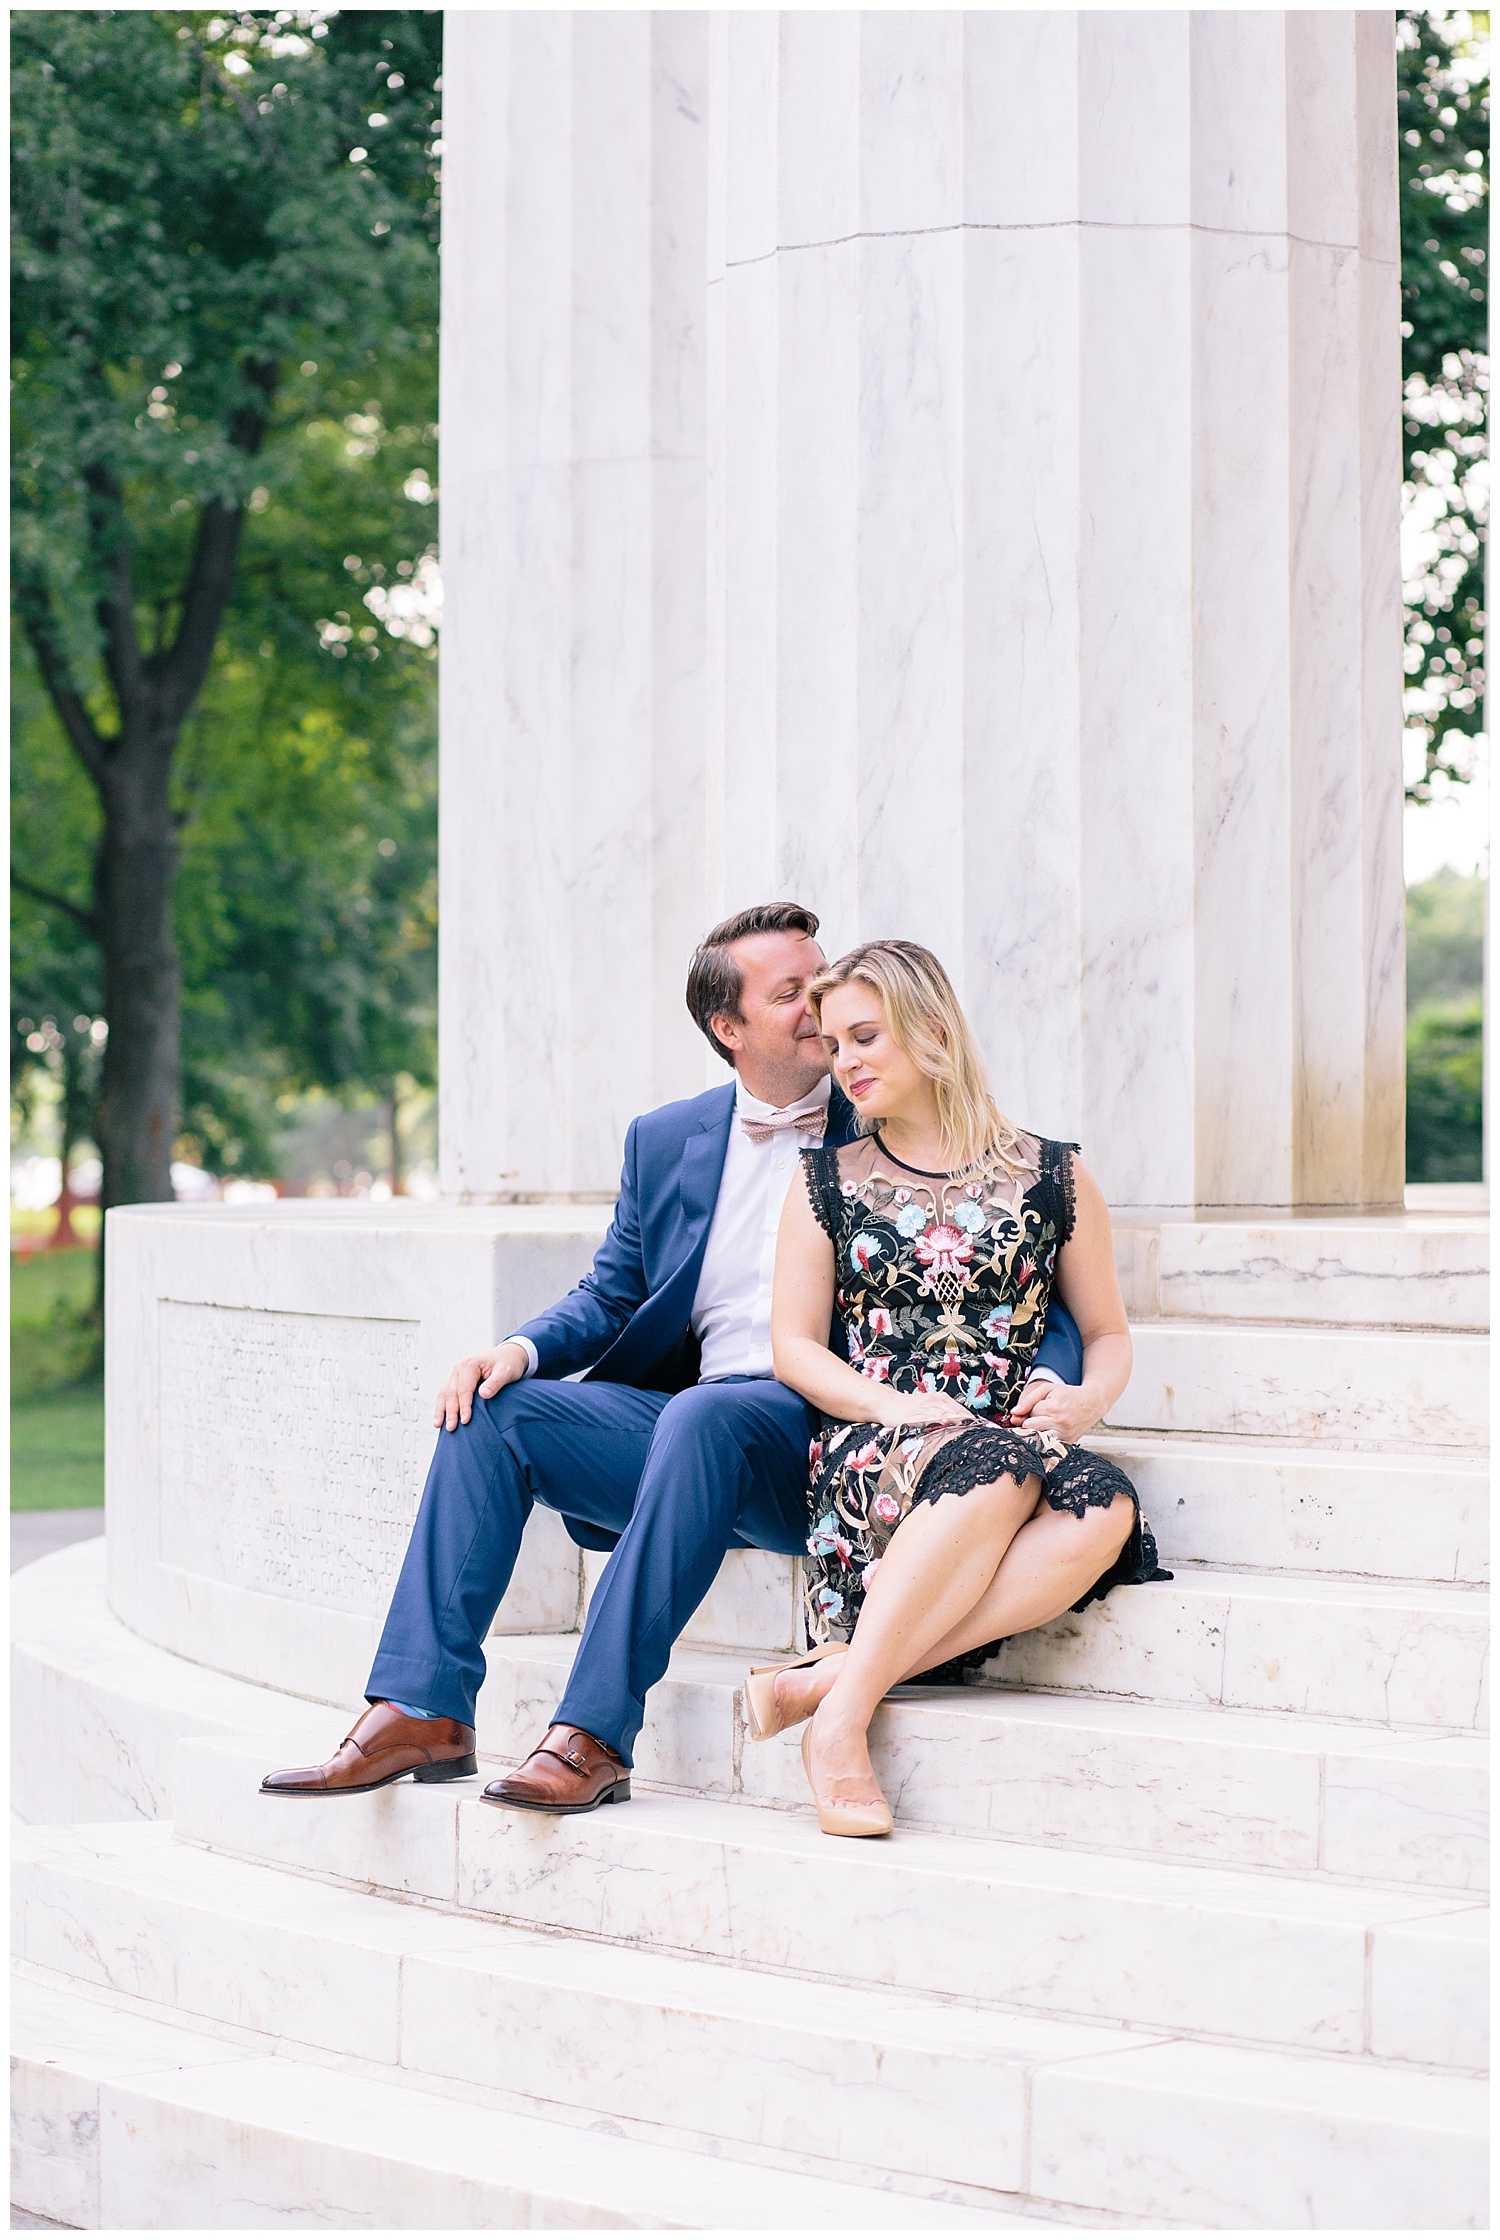 emily-belson-photography-washington-dc-engagement-emily-john-01.jpg